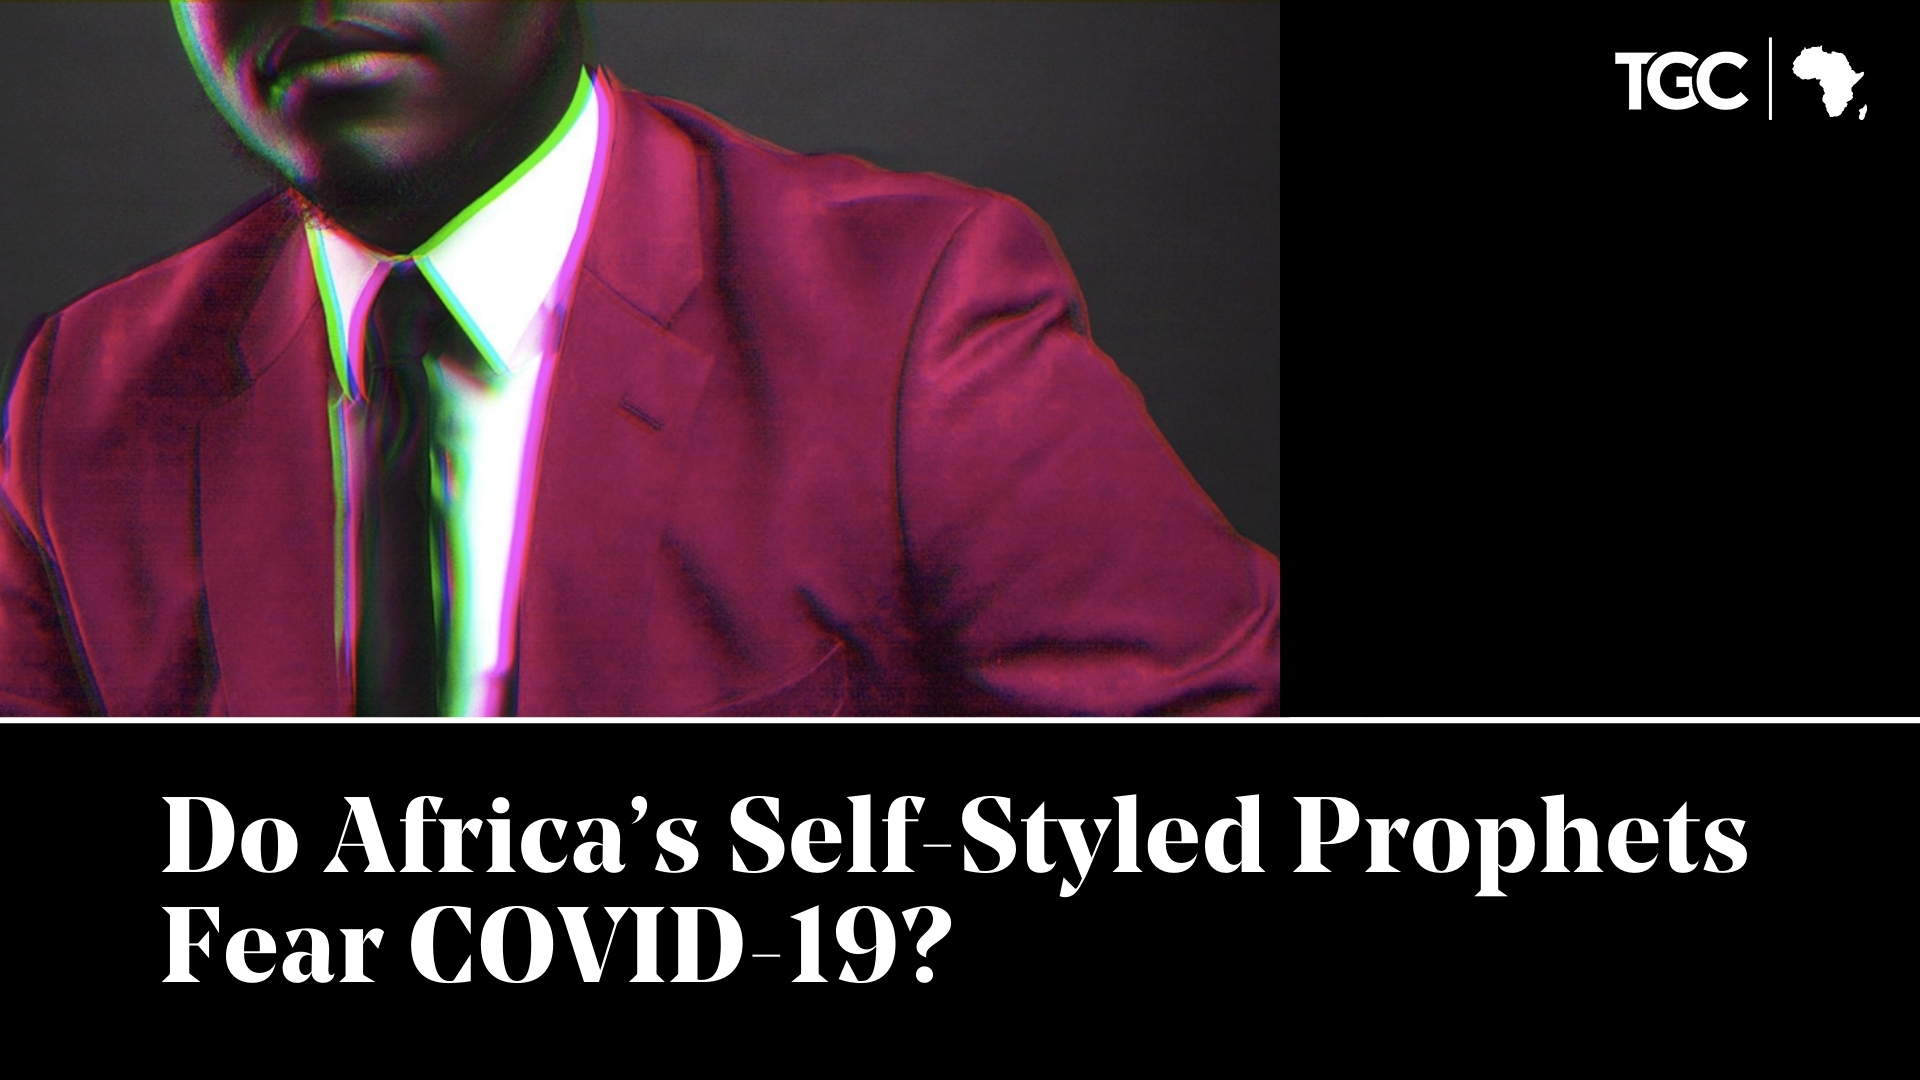 Do Africa's Self-Styled Prophets Fear COVID-19?